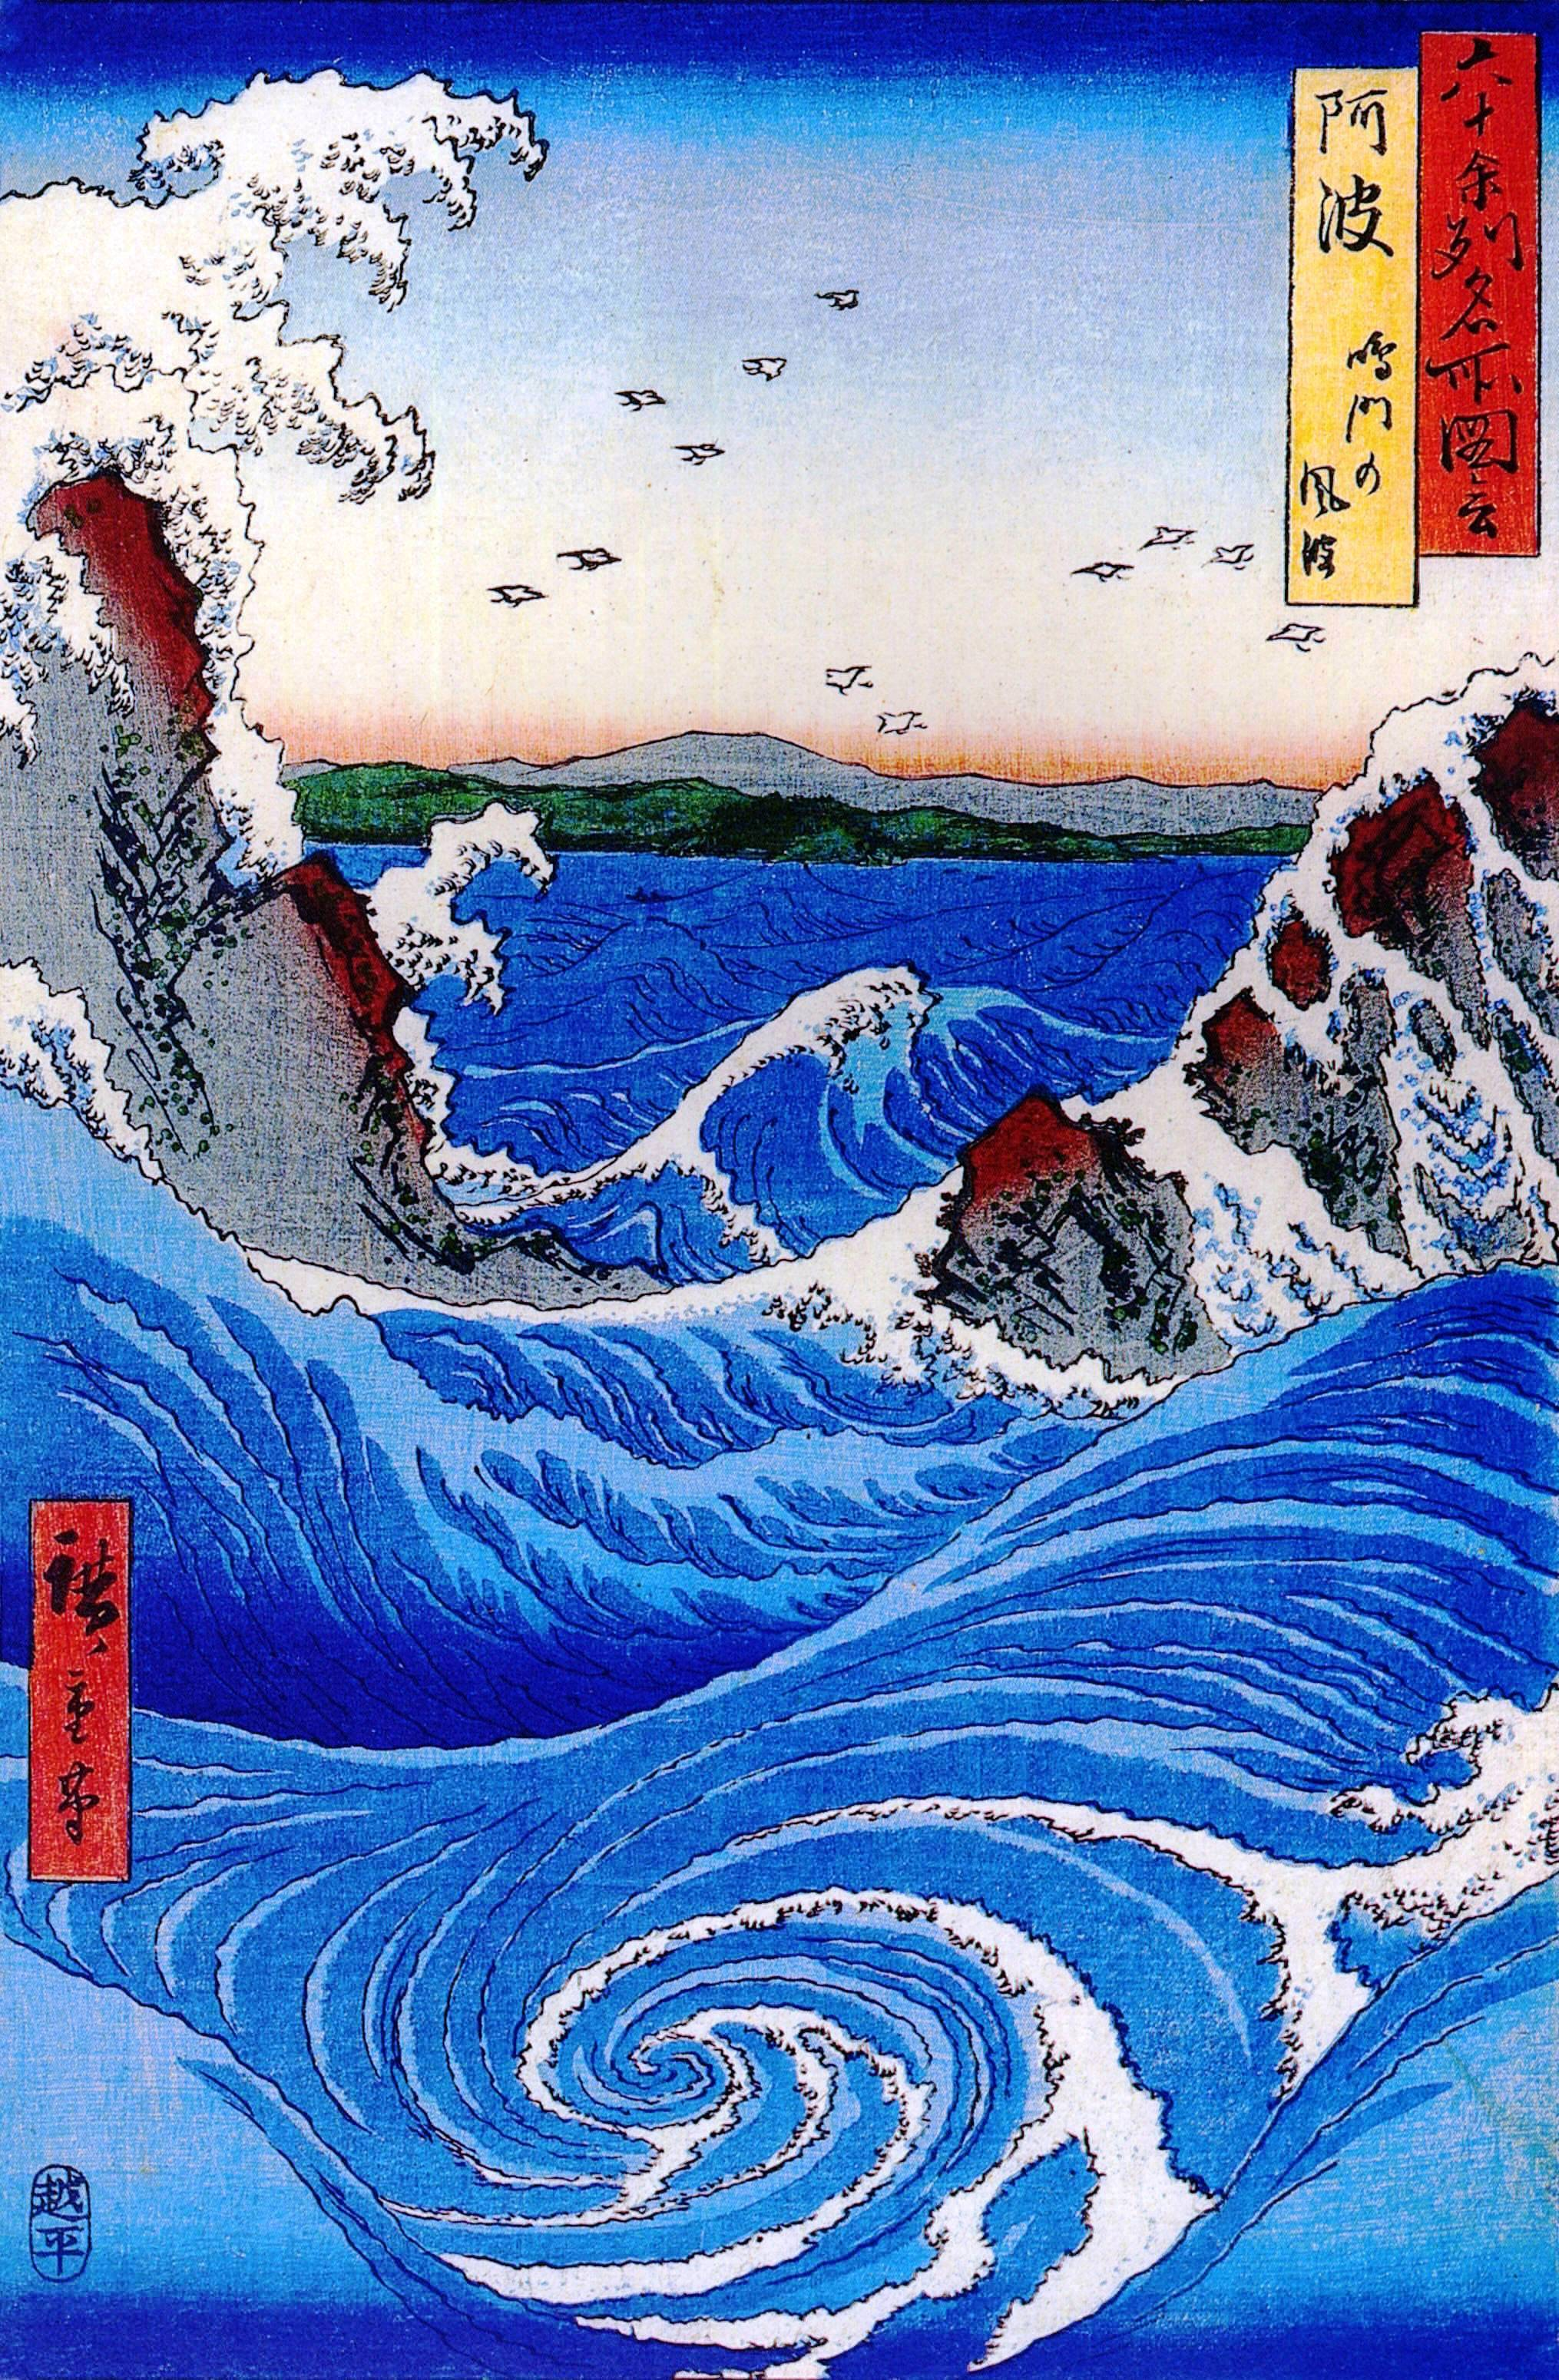 L'heure d'accomplir son destin, la quête des Kaguyas!! Hiroshige_Wild_sea_breaking_on_the_rocks